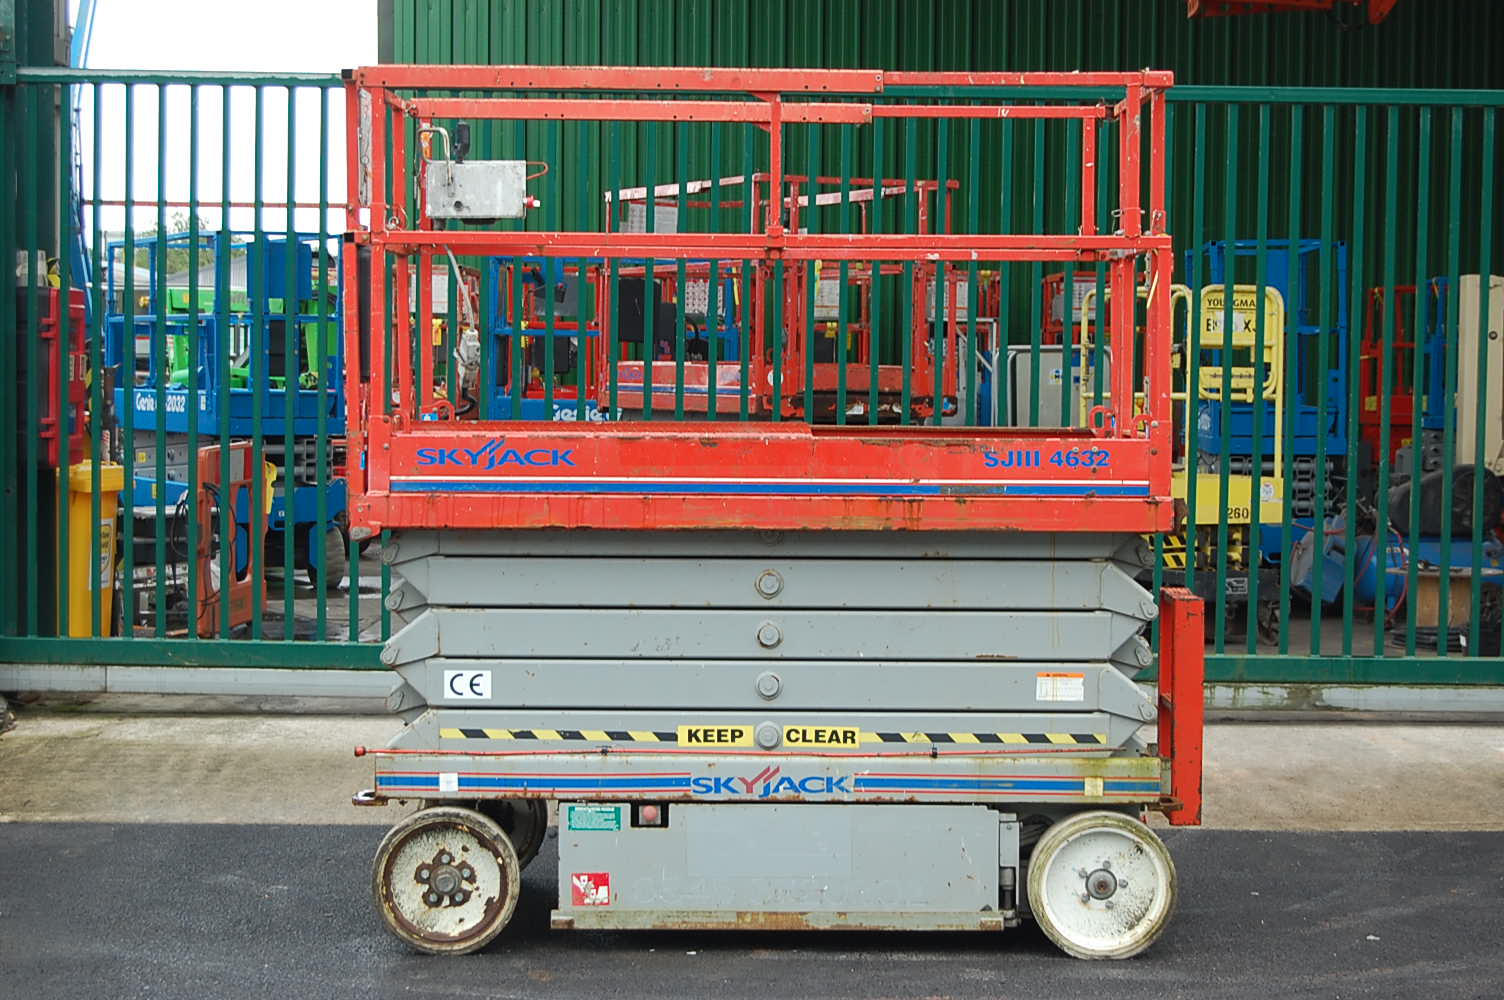 Skyjack 4632 Electric 12m Scissor Lift